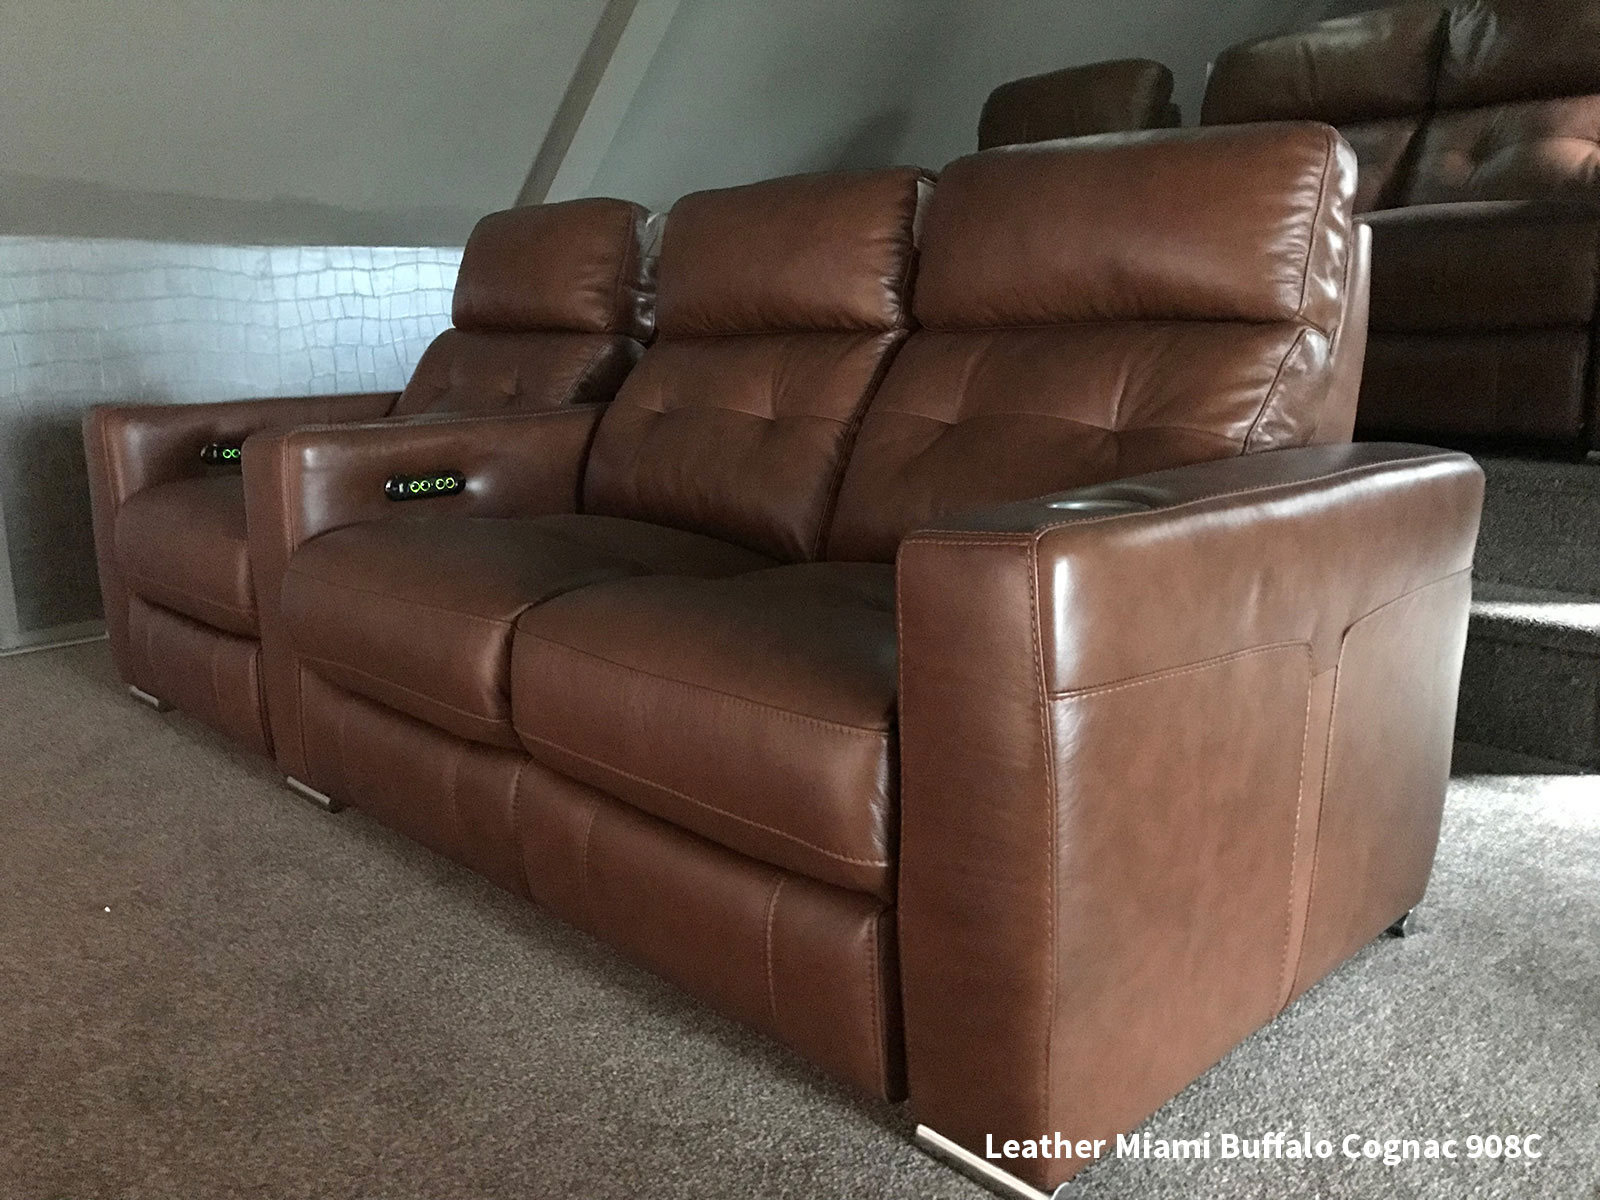 FrontRow™ Serenity Home Cinema Seating